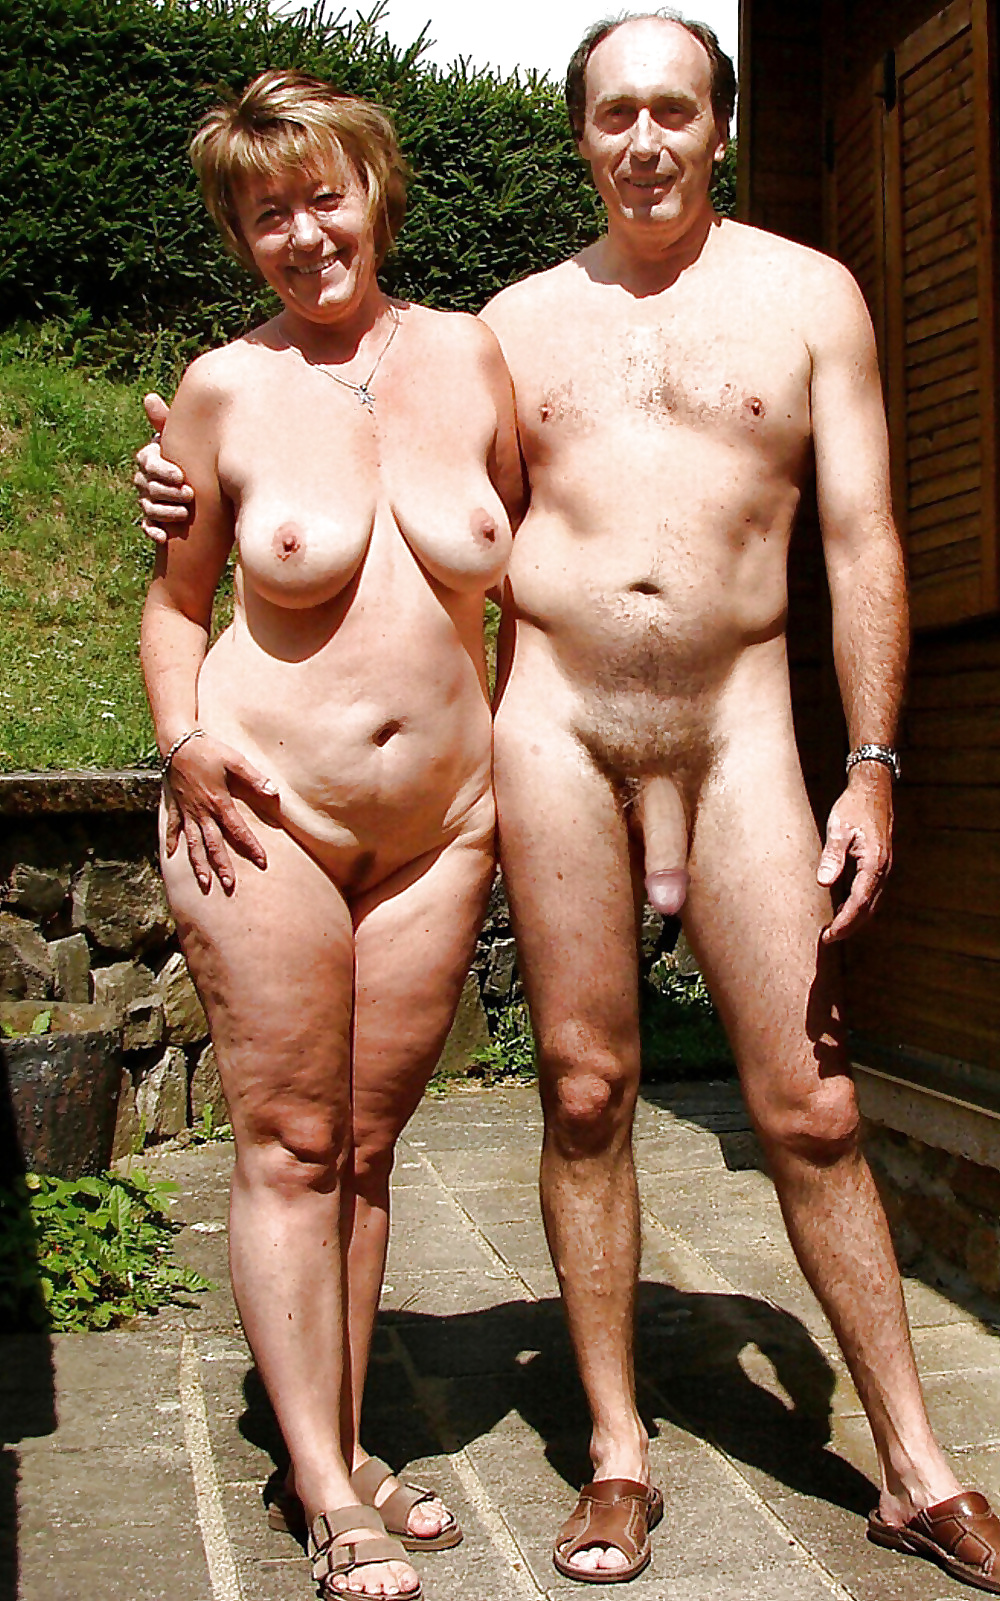 Adult nudists couple costume adam and eve fancy dress funny naked outfit